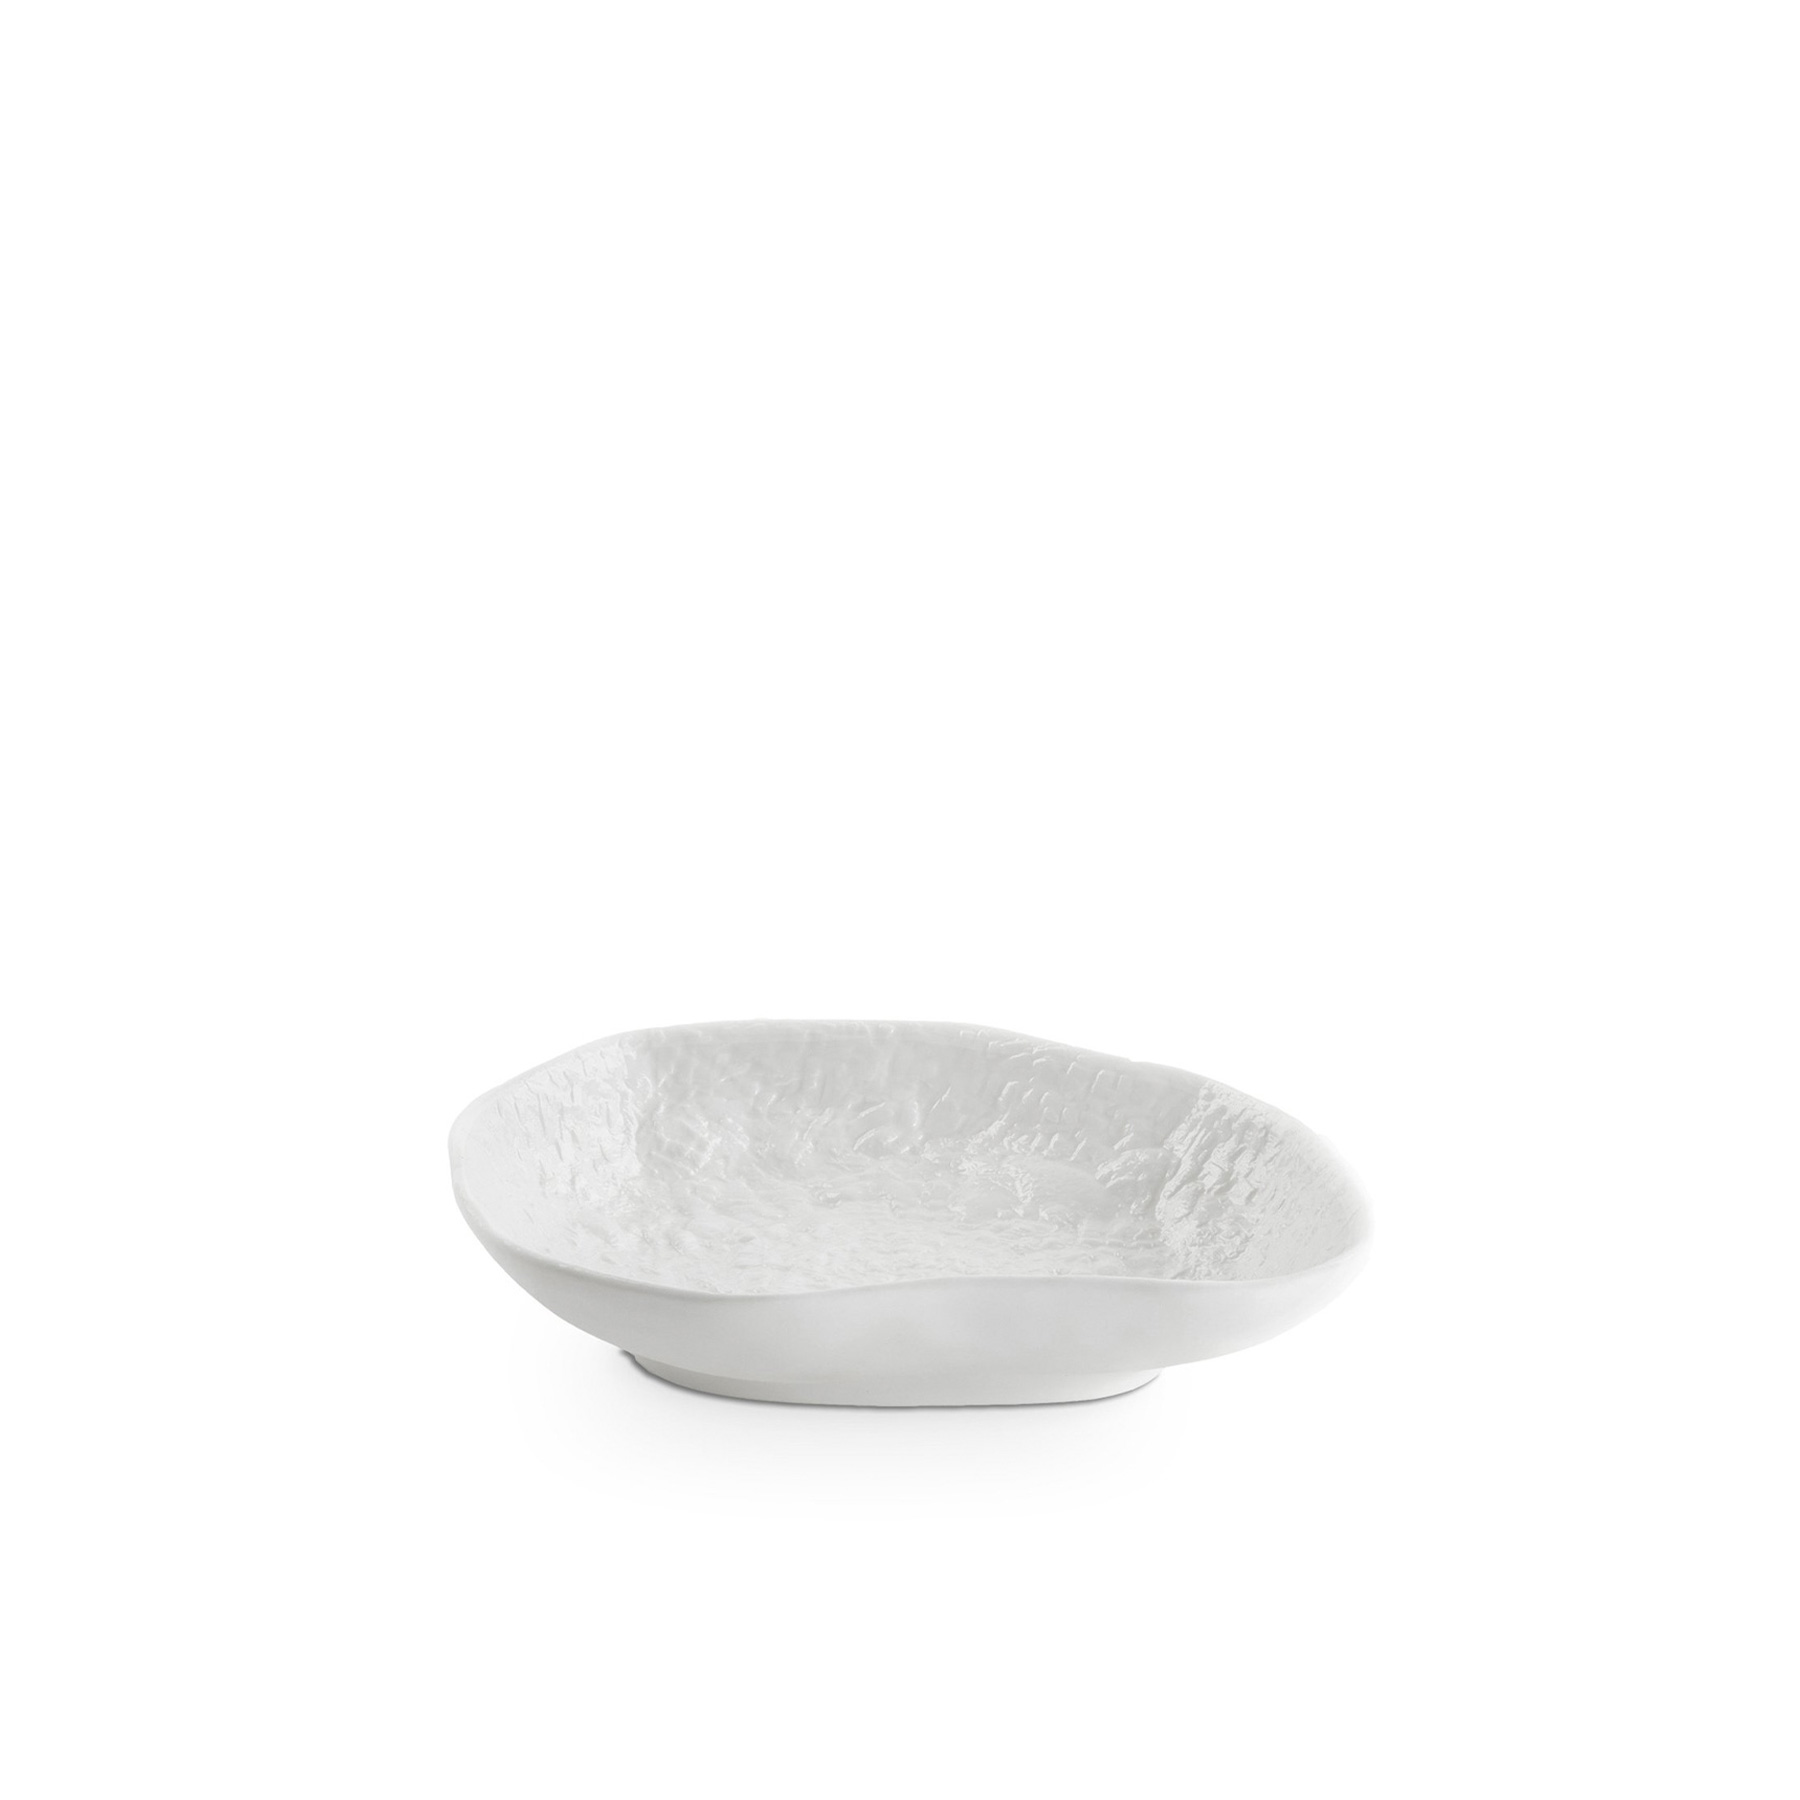 Crockery White Small Platter - A collection of fine bone china tableware slip-cast from plaster models carved by hand, with glazed interior for functionality and raw exterior reflecting the modest surface texture of the plaster original. The process of slip-casting begins with the creation of a three-dimensional model of the design known as a master by a professional model-maker, from which the production mould is cast. Crockery bypasses this process by placing the responsibility of both designer and model-maker in the hands of Max Lamb. Using the tools of a stone mason Max chips and carves a solid block of plaster to make a series of tableware, the design of each formed quite simply out of their own making.  | Matter of Stuff